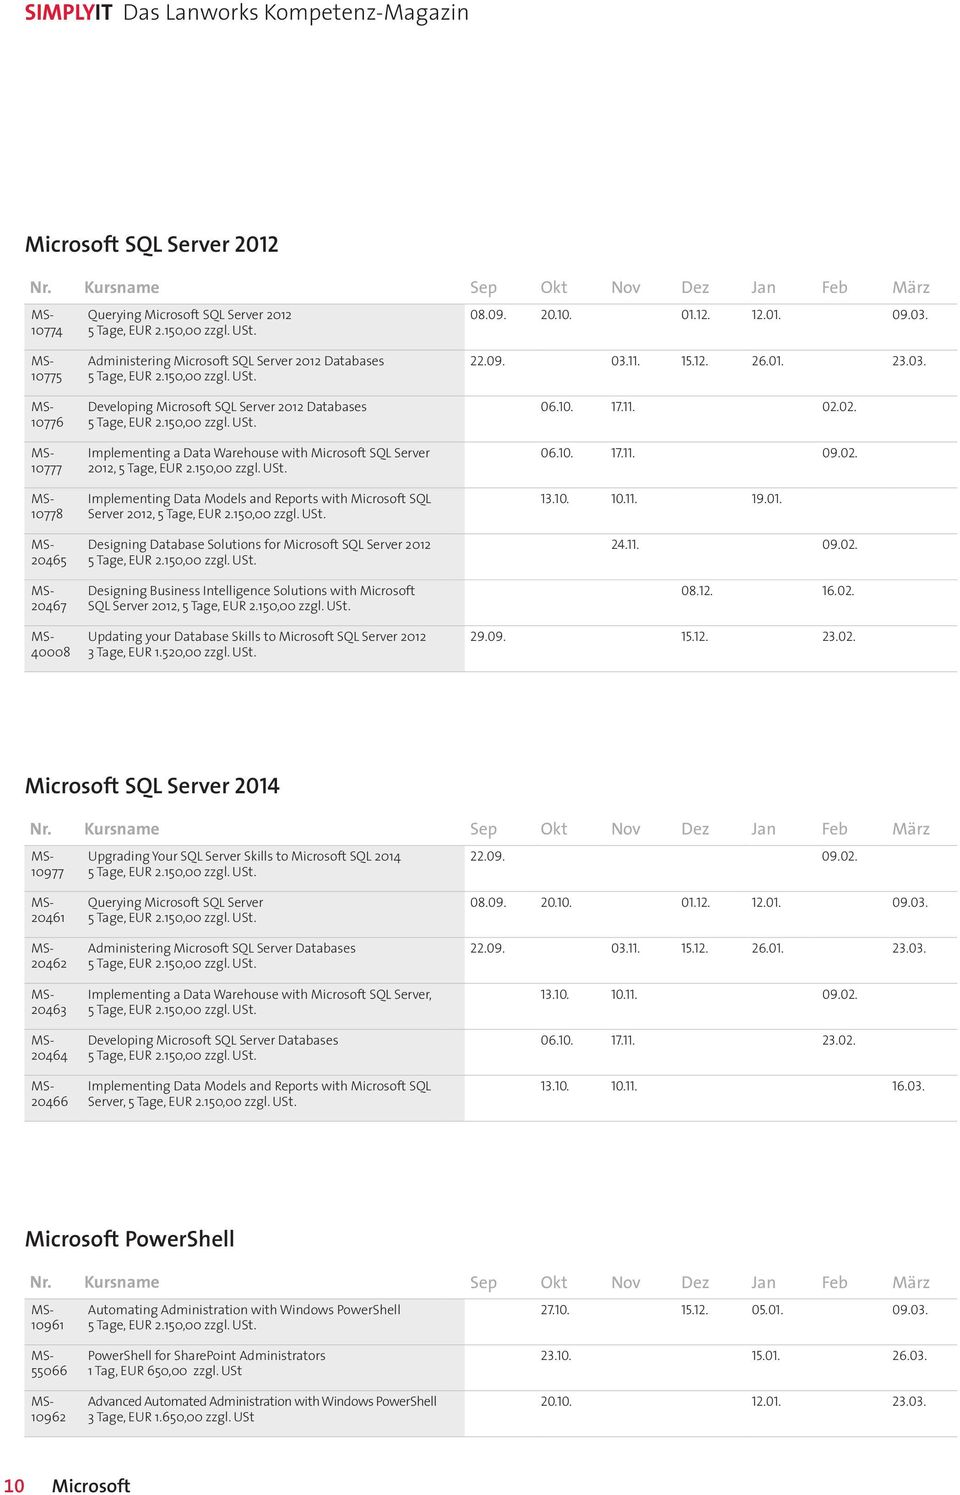 2012, Implementing Data Models and Reports with Microsoft SQL Server 2012, Designing Database Solutions for Microsoft SQL Server 2012 Designing Business Intelligence Solutions with Microsoft SQL